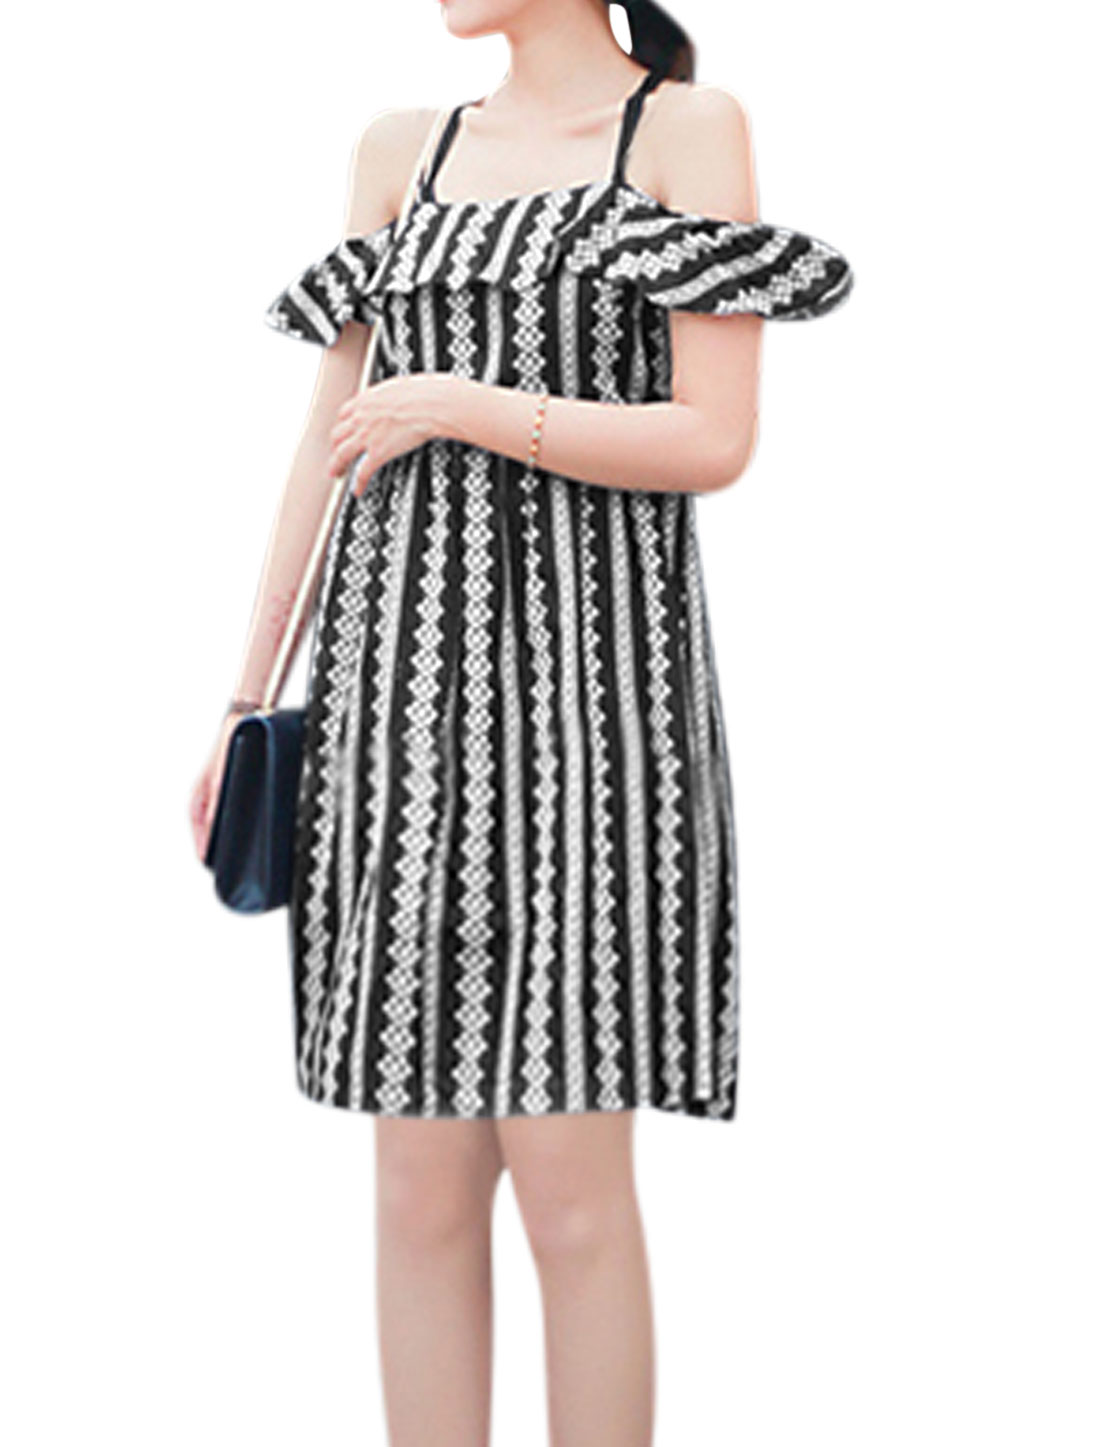 Ladies Novelty Prints Spaghetti Strap Unlined Casual Dress Black XS